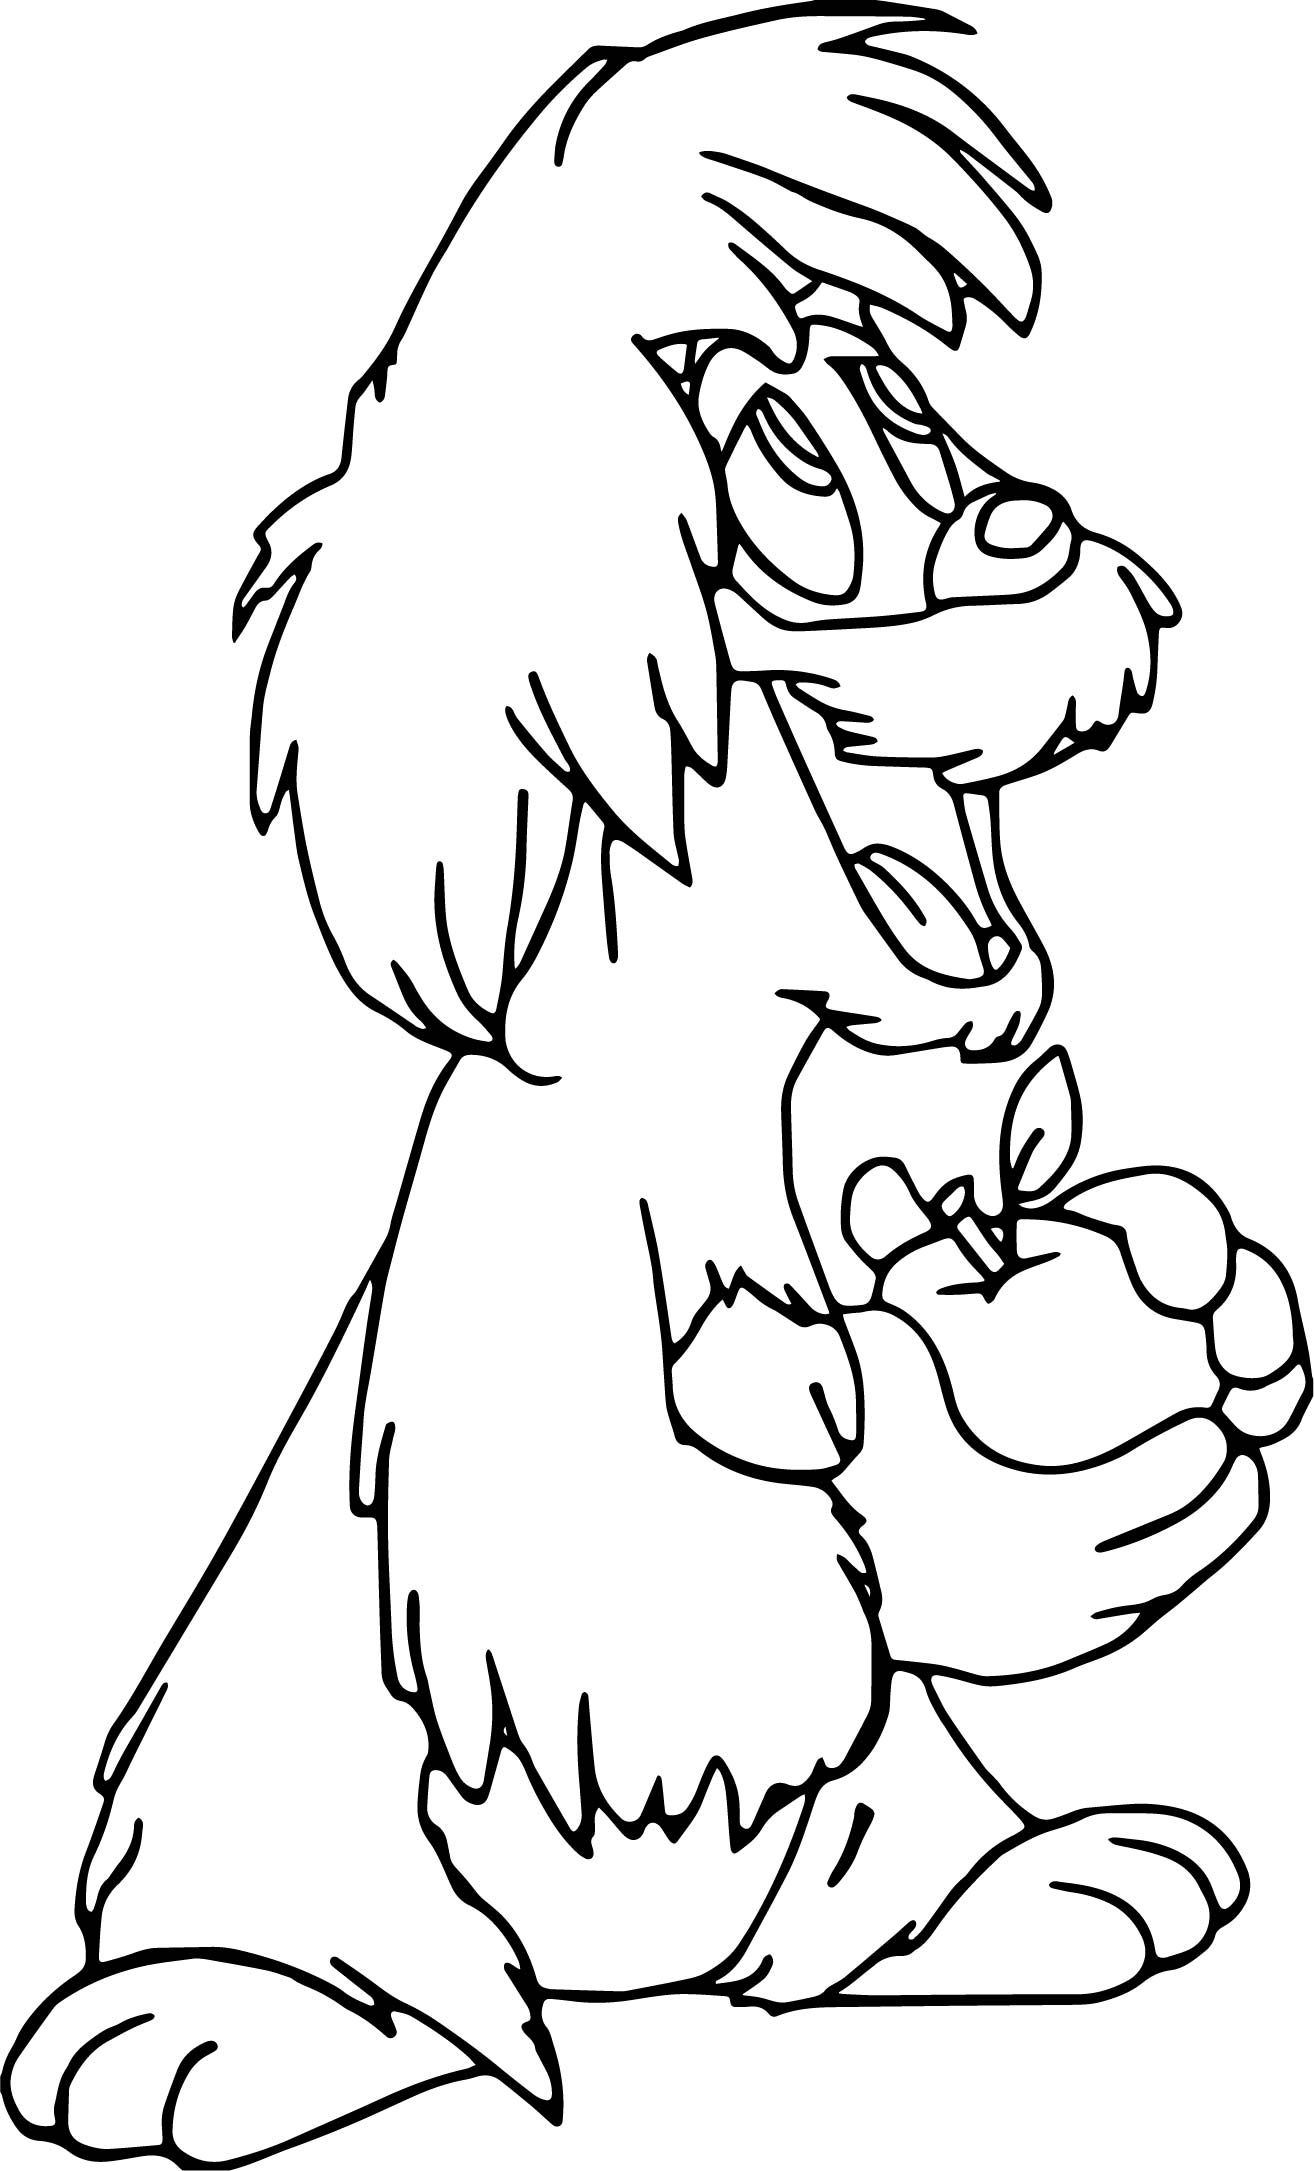 The Black Cauldron Gurgi Coloring Page Wecoloringpage The Black Cauldron Coloring Pages